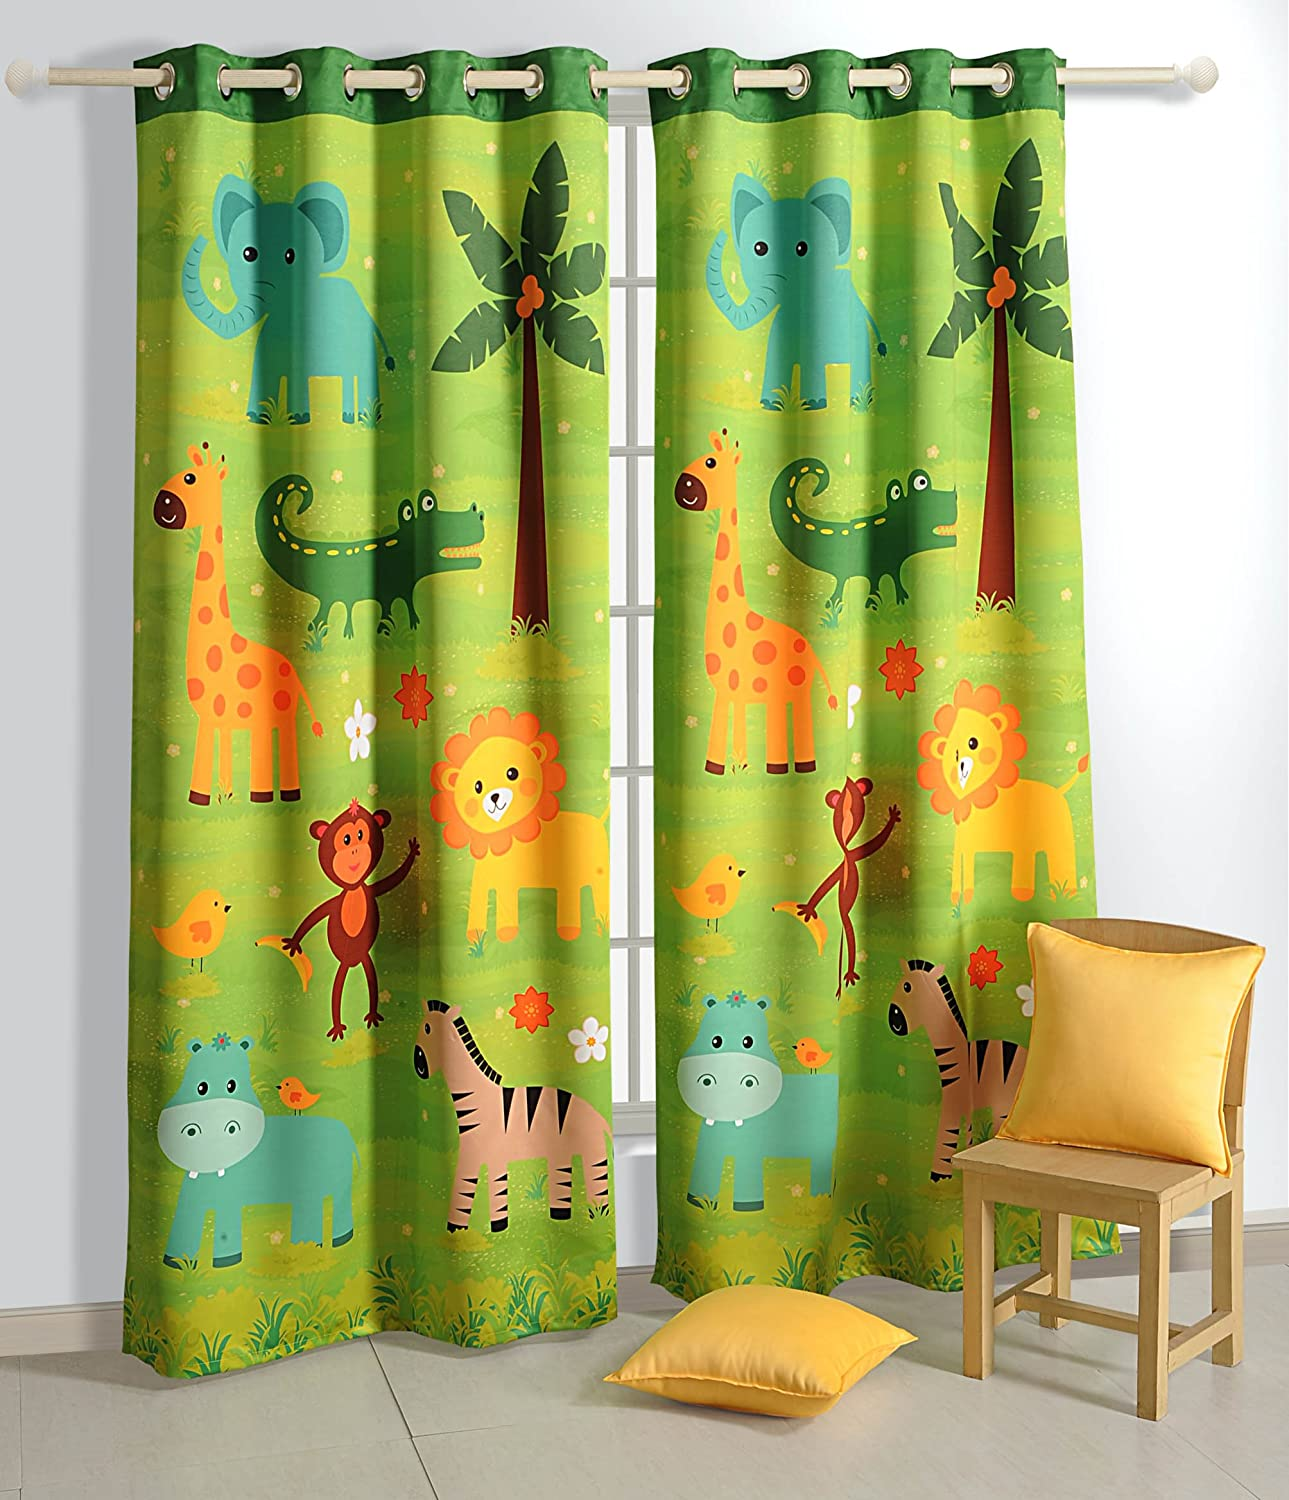 Lovely Amazon.com: Blackout Polysatin Door Curtains For Kids Rooms  Safari Fun   Set Of 2 Curtain Panels With Silver Grommets 48 Inch X 84 Inch: Home U0026  Kitchen